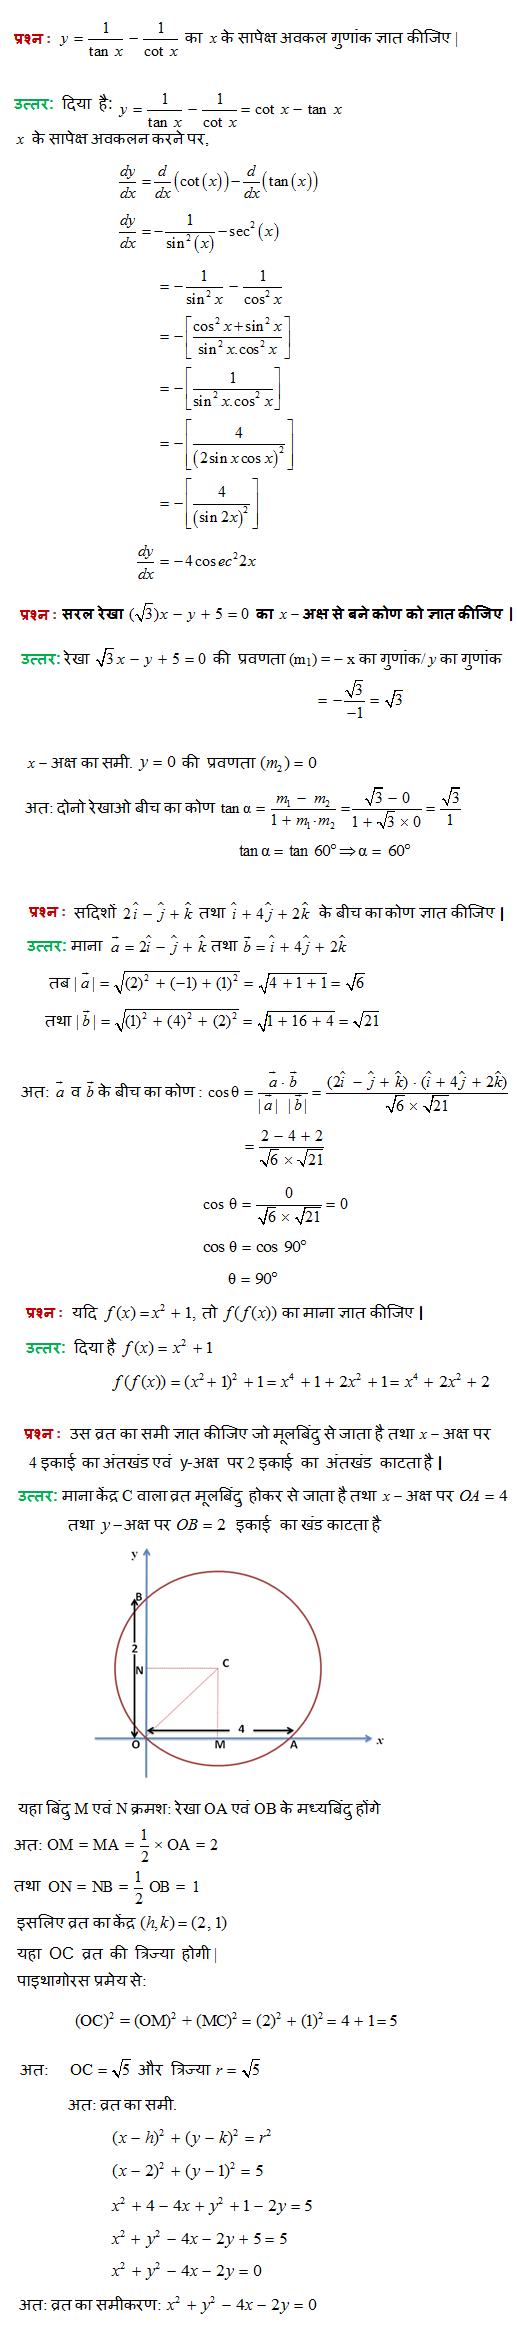 UP Board Class 12 Mathematics Second Solved Question Paper Set-1: 2014